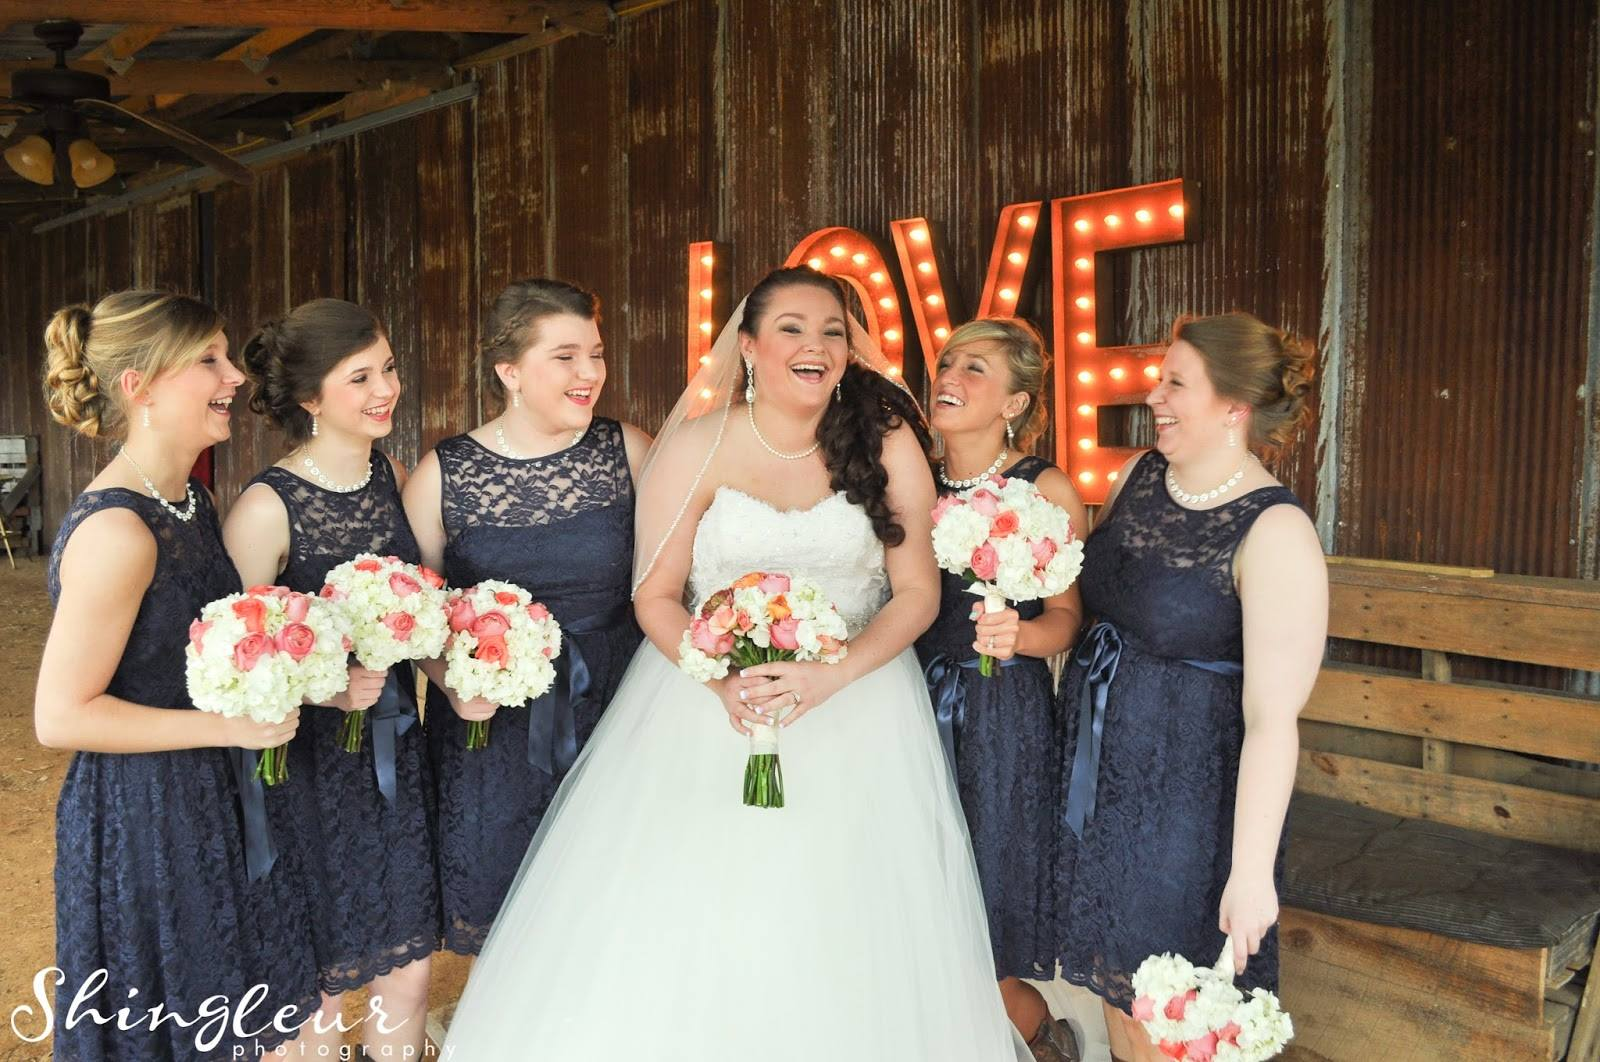 Shingleur Photography , from  Brittany + Tyler 's wedding